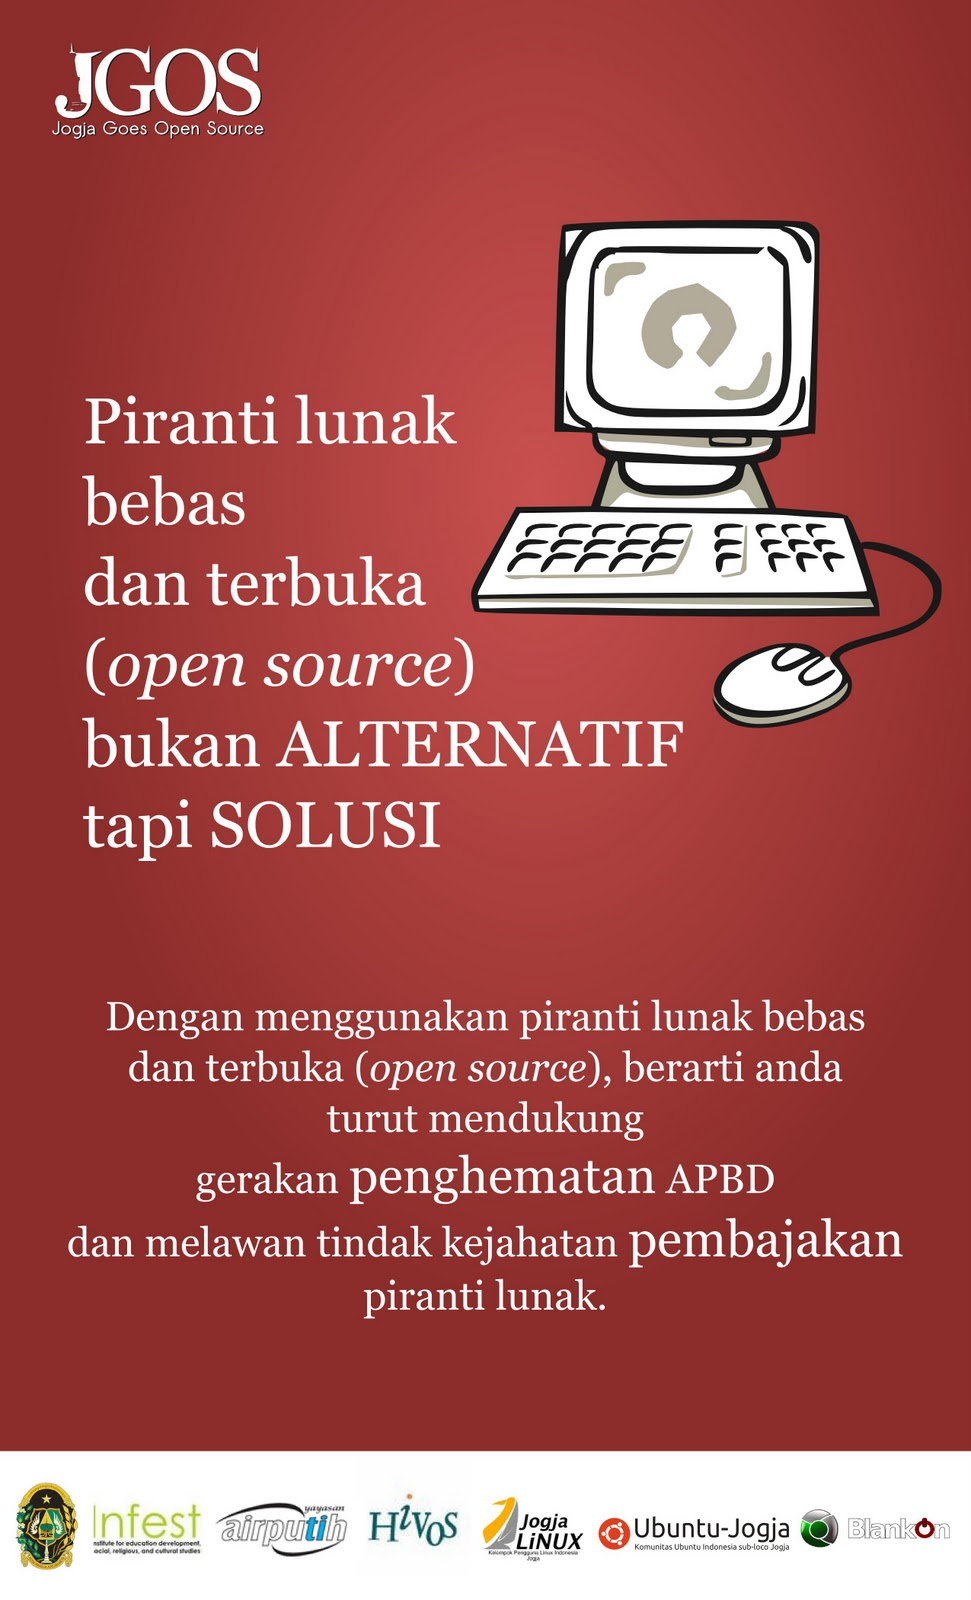 Kampanye Jogja Goes Open Source #JGOS